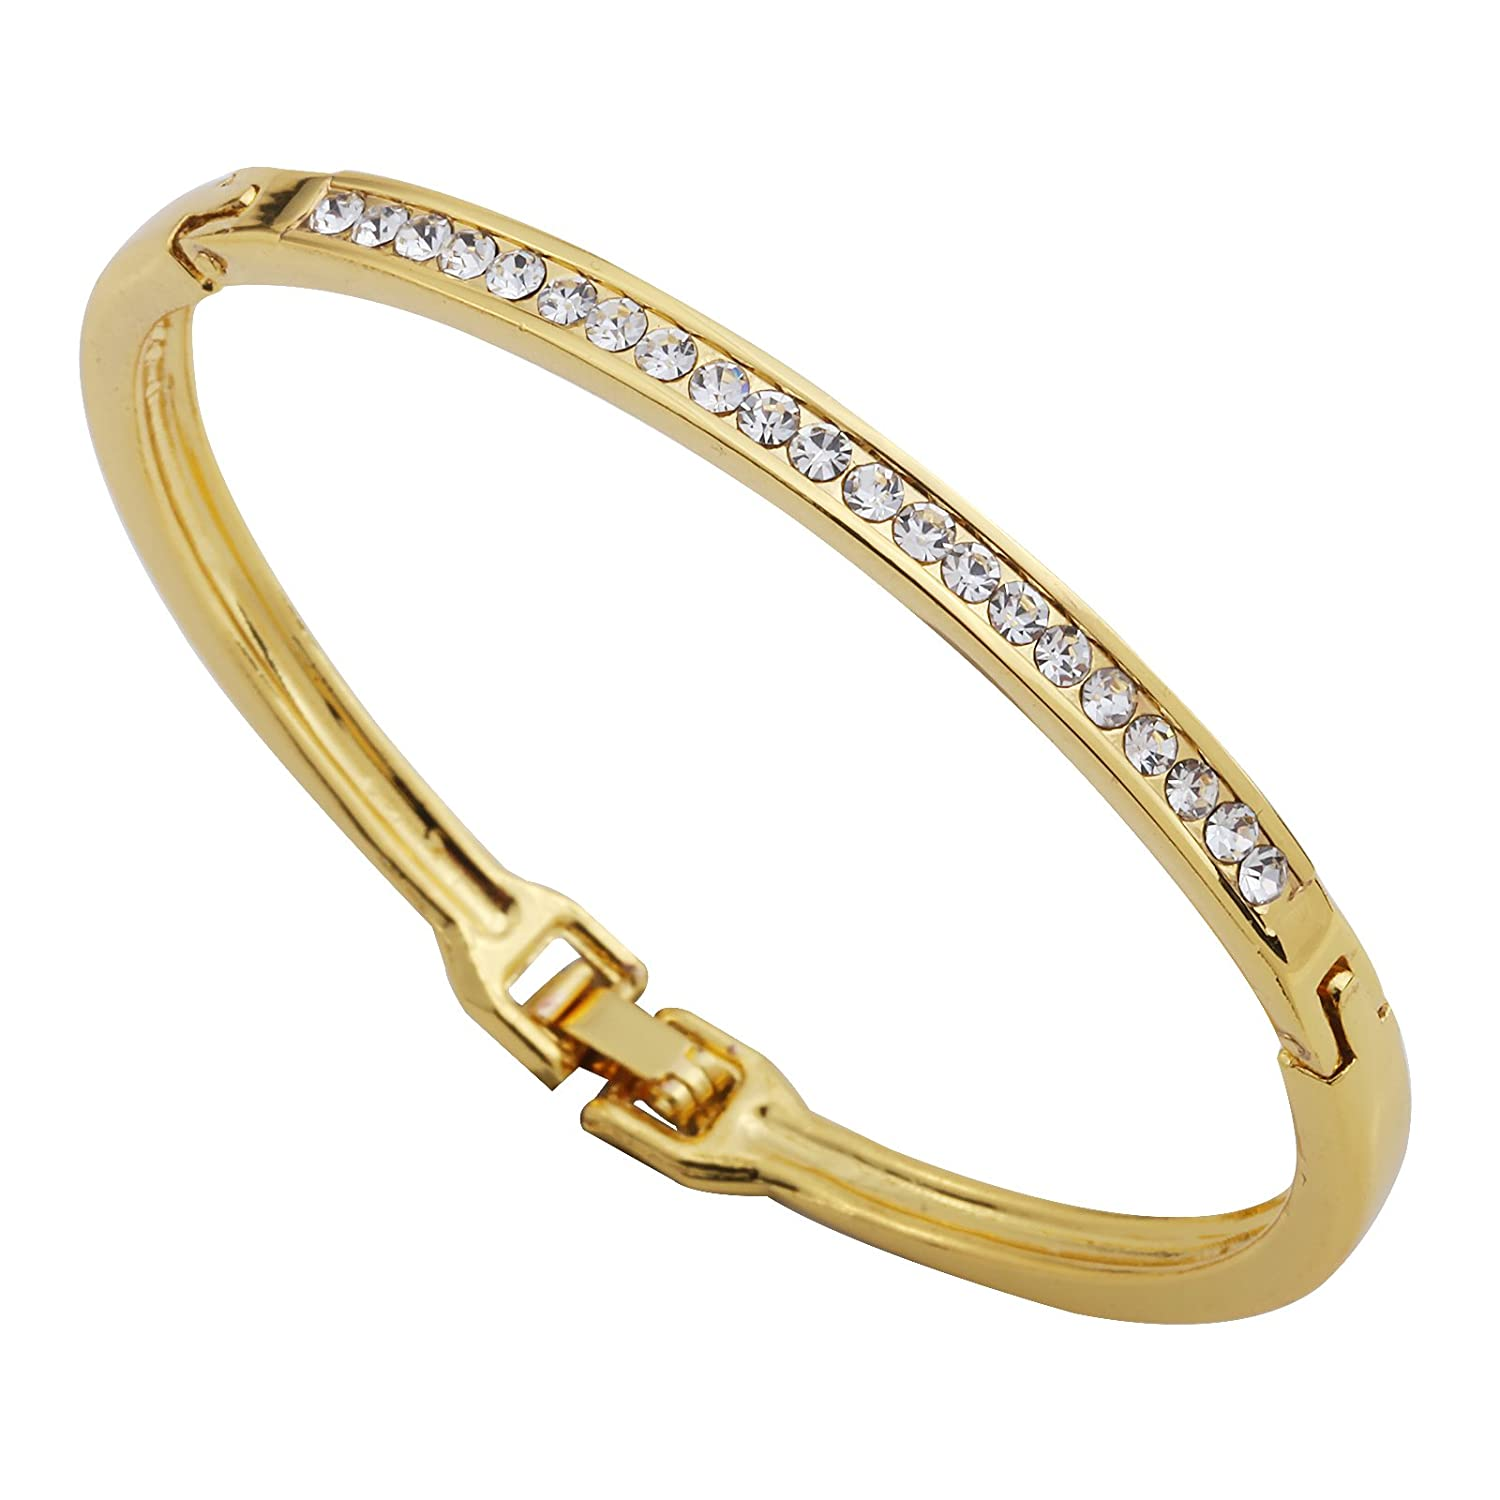 diamond at sale bracelets j z first bangles chanel camellia bracelet for gold bangle id jewelry org